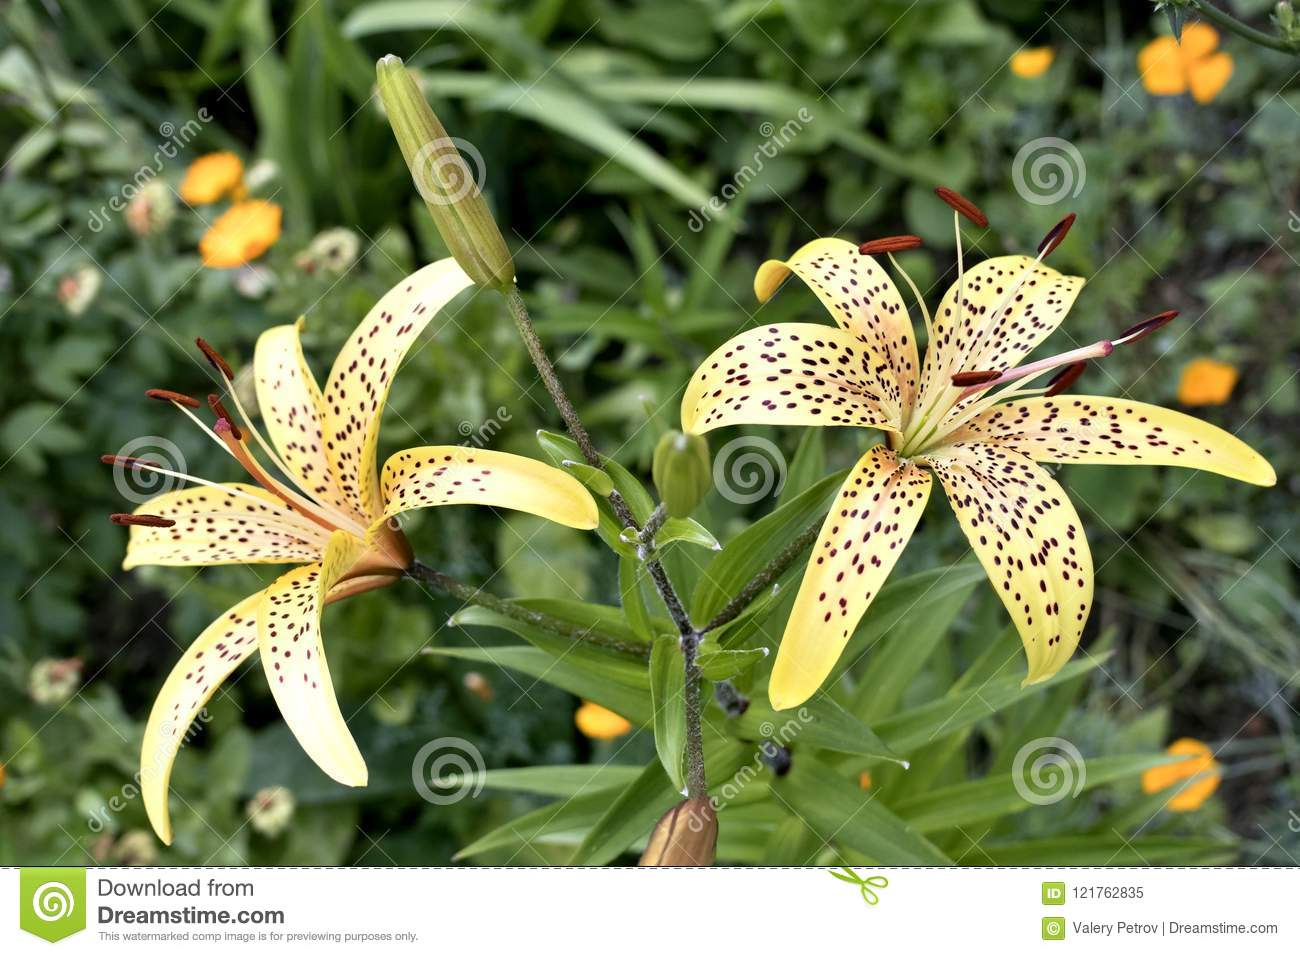 Yellow tiger lily flowers stock image image of golden 121762835 yellow tiger lily flowers izmirmasajfo